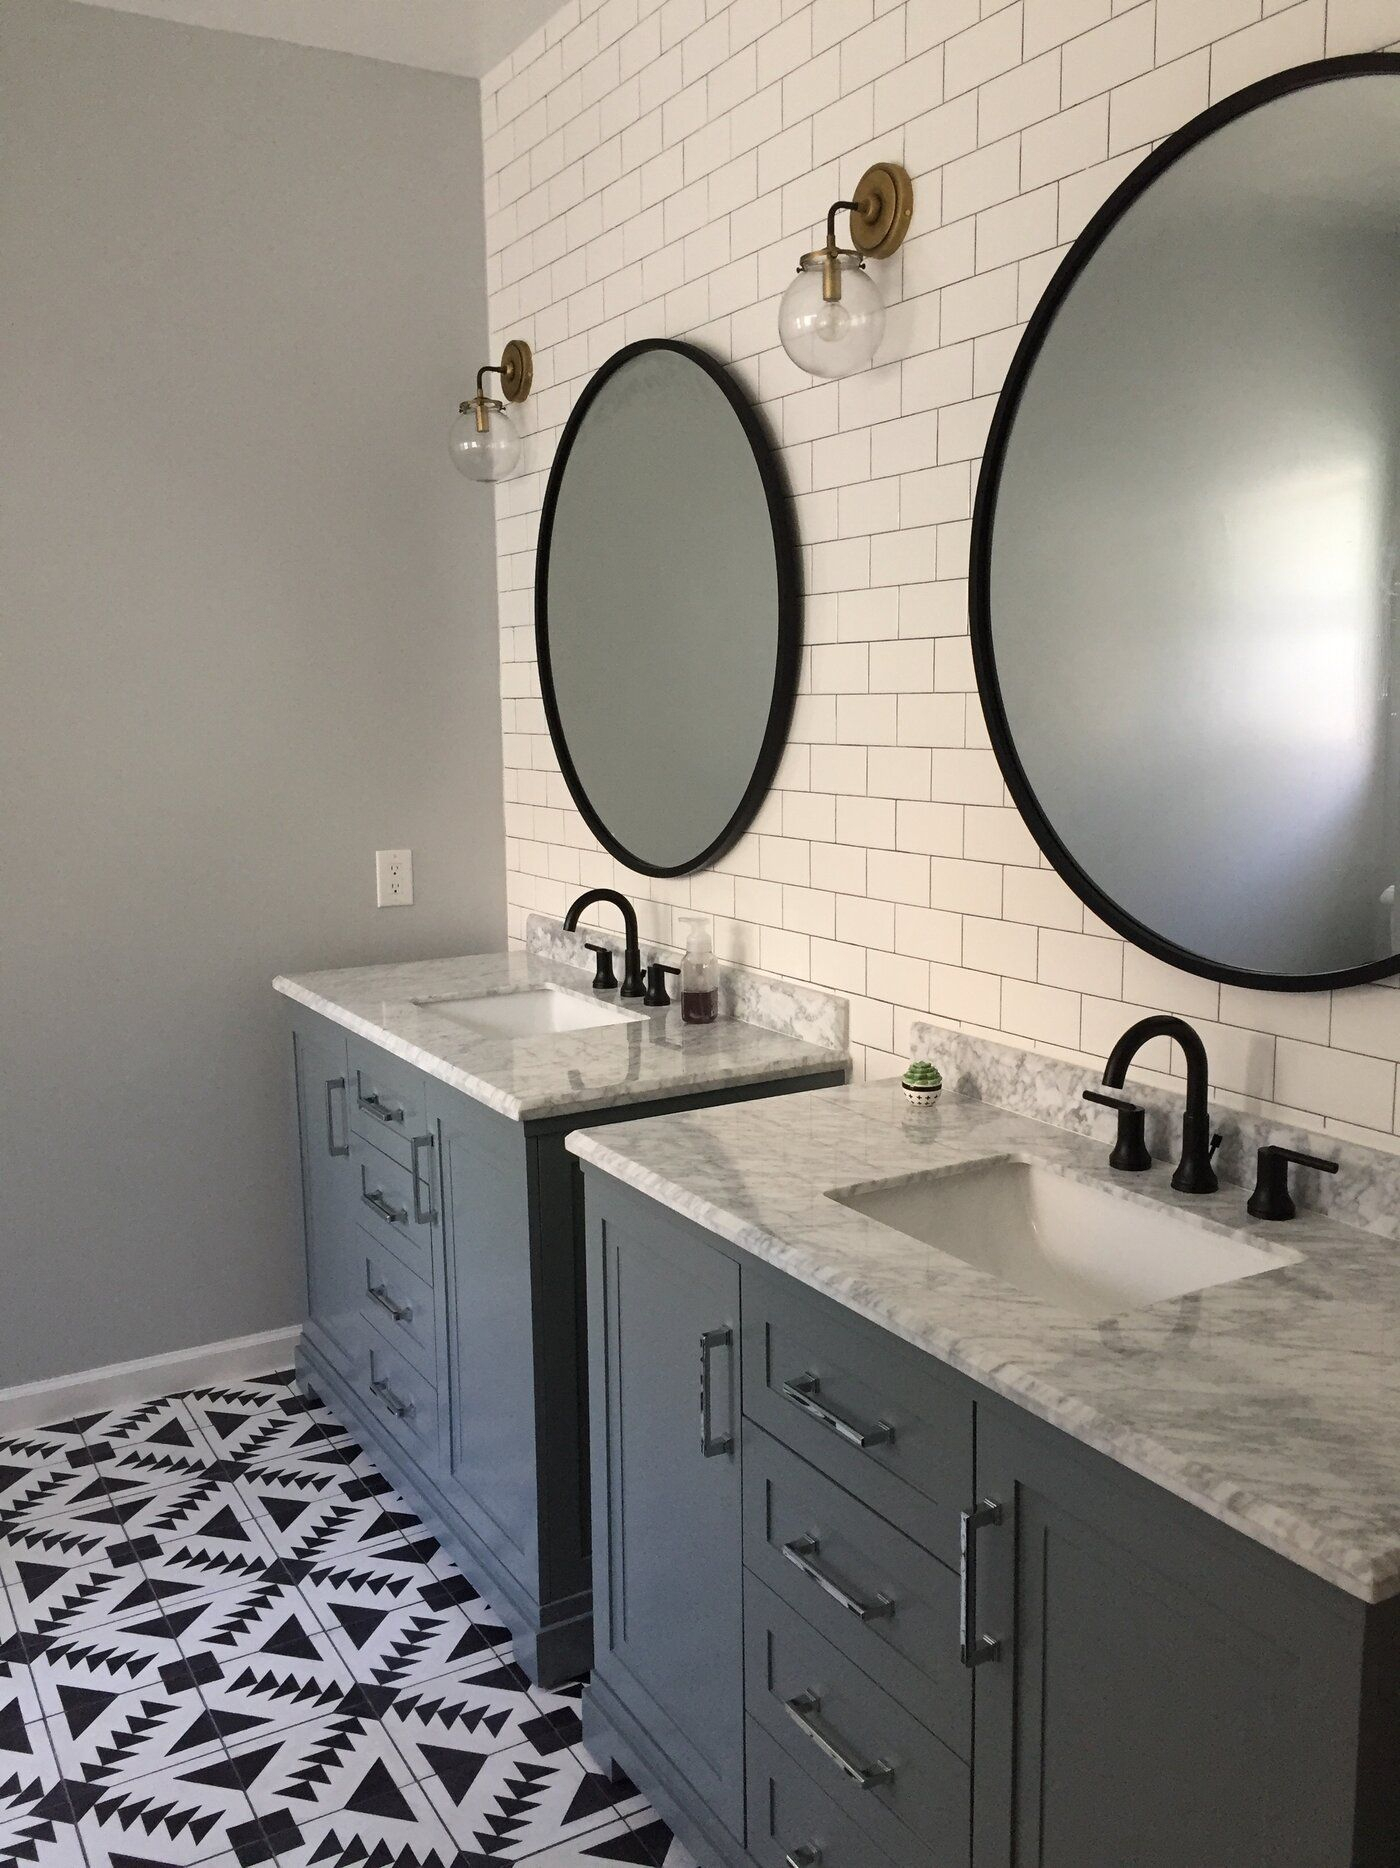 Hub Modern And Contemporary Accent Mirror In 2019 | Bathroom Pertaining To Hub Modern And Contemporary Accent Mirrors (Photo 3 of 20)